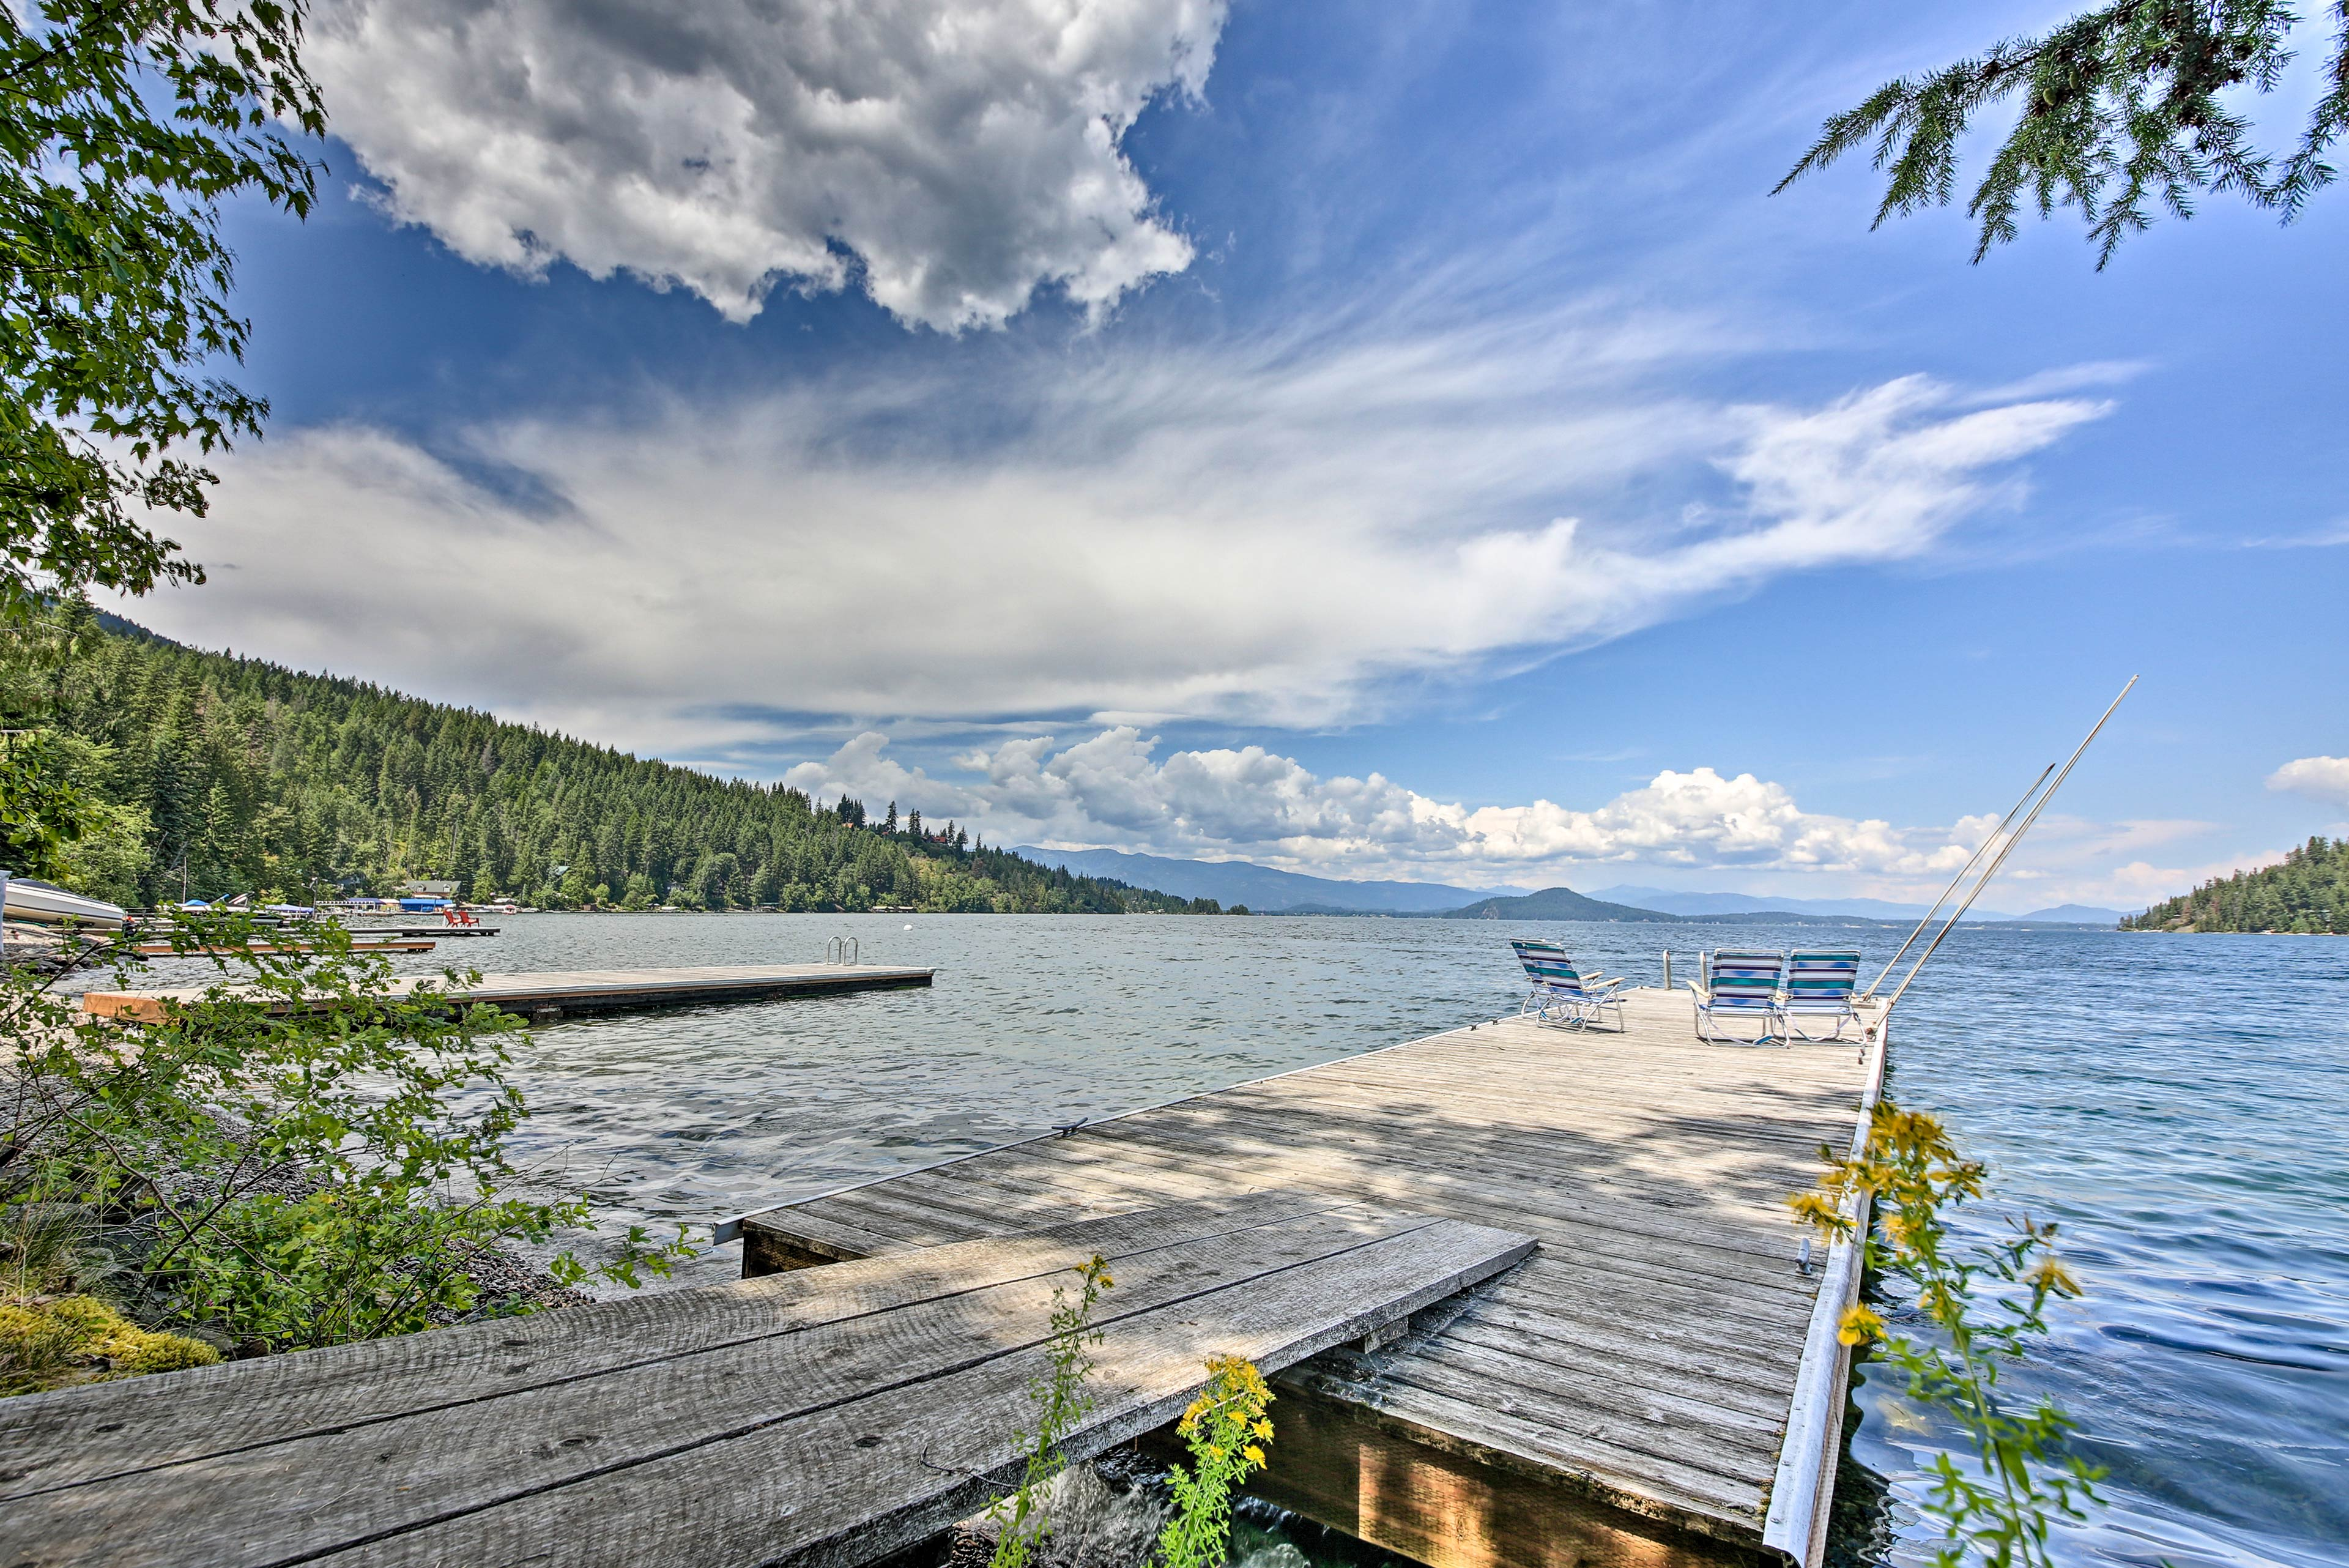 Head to the dock to fish or swim!